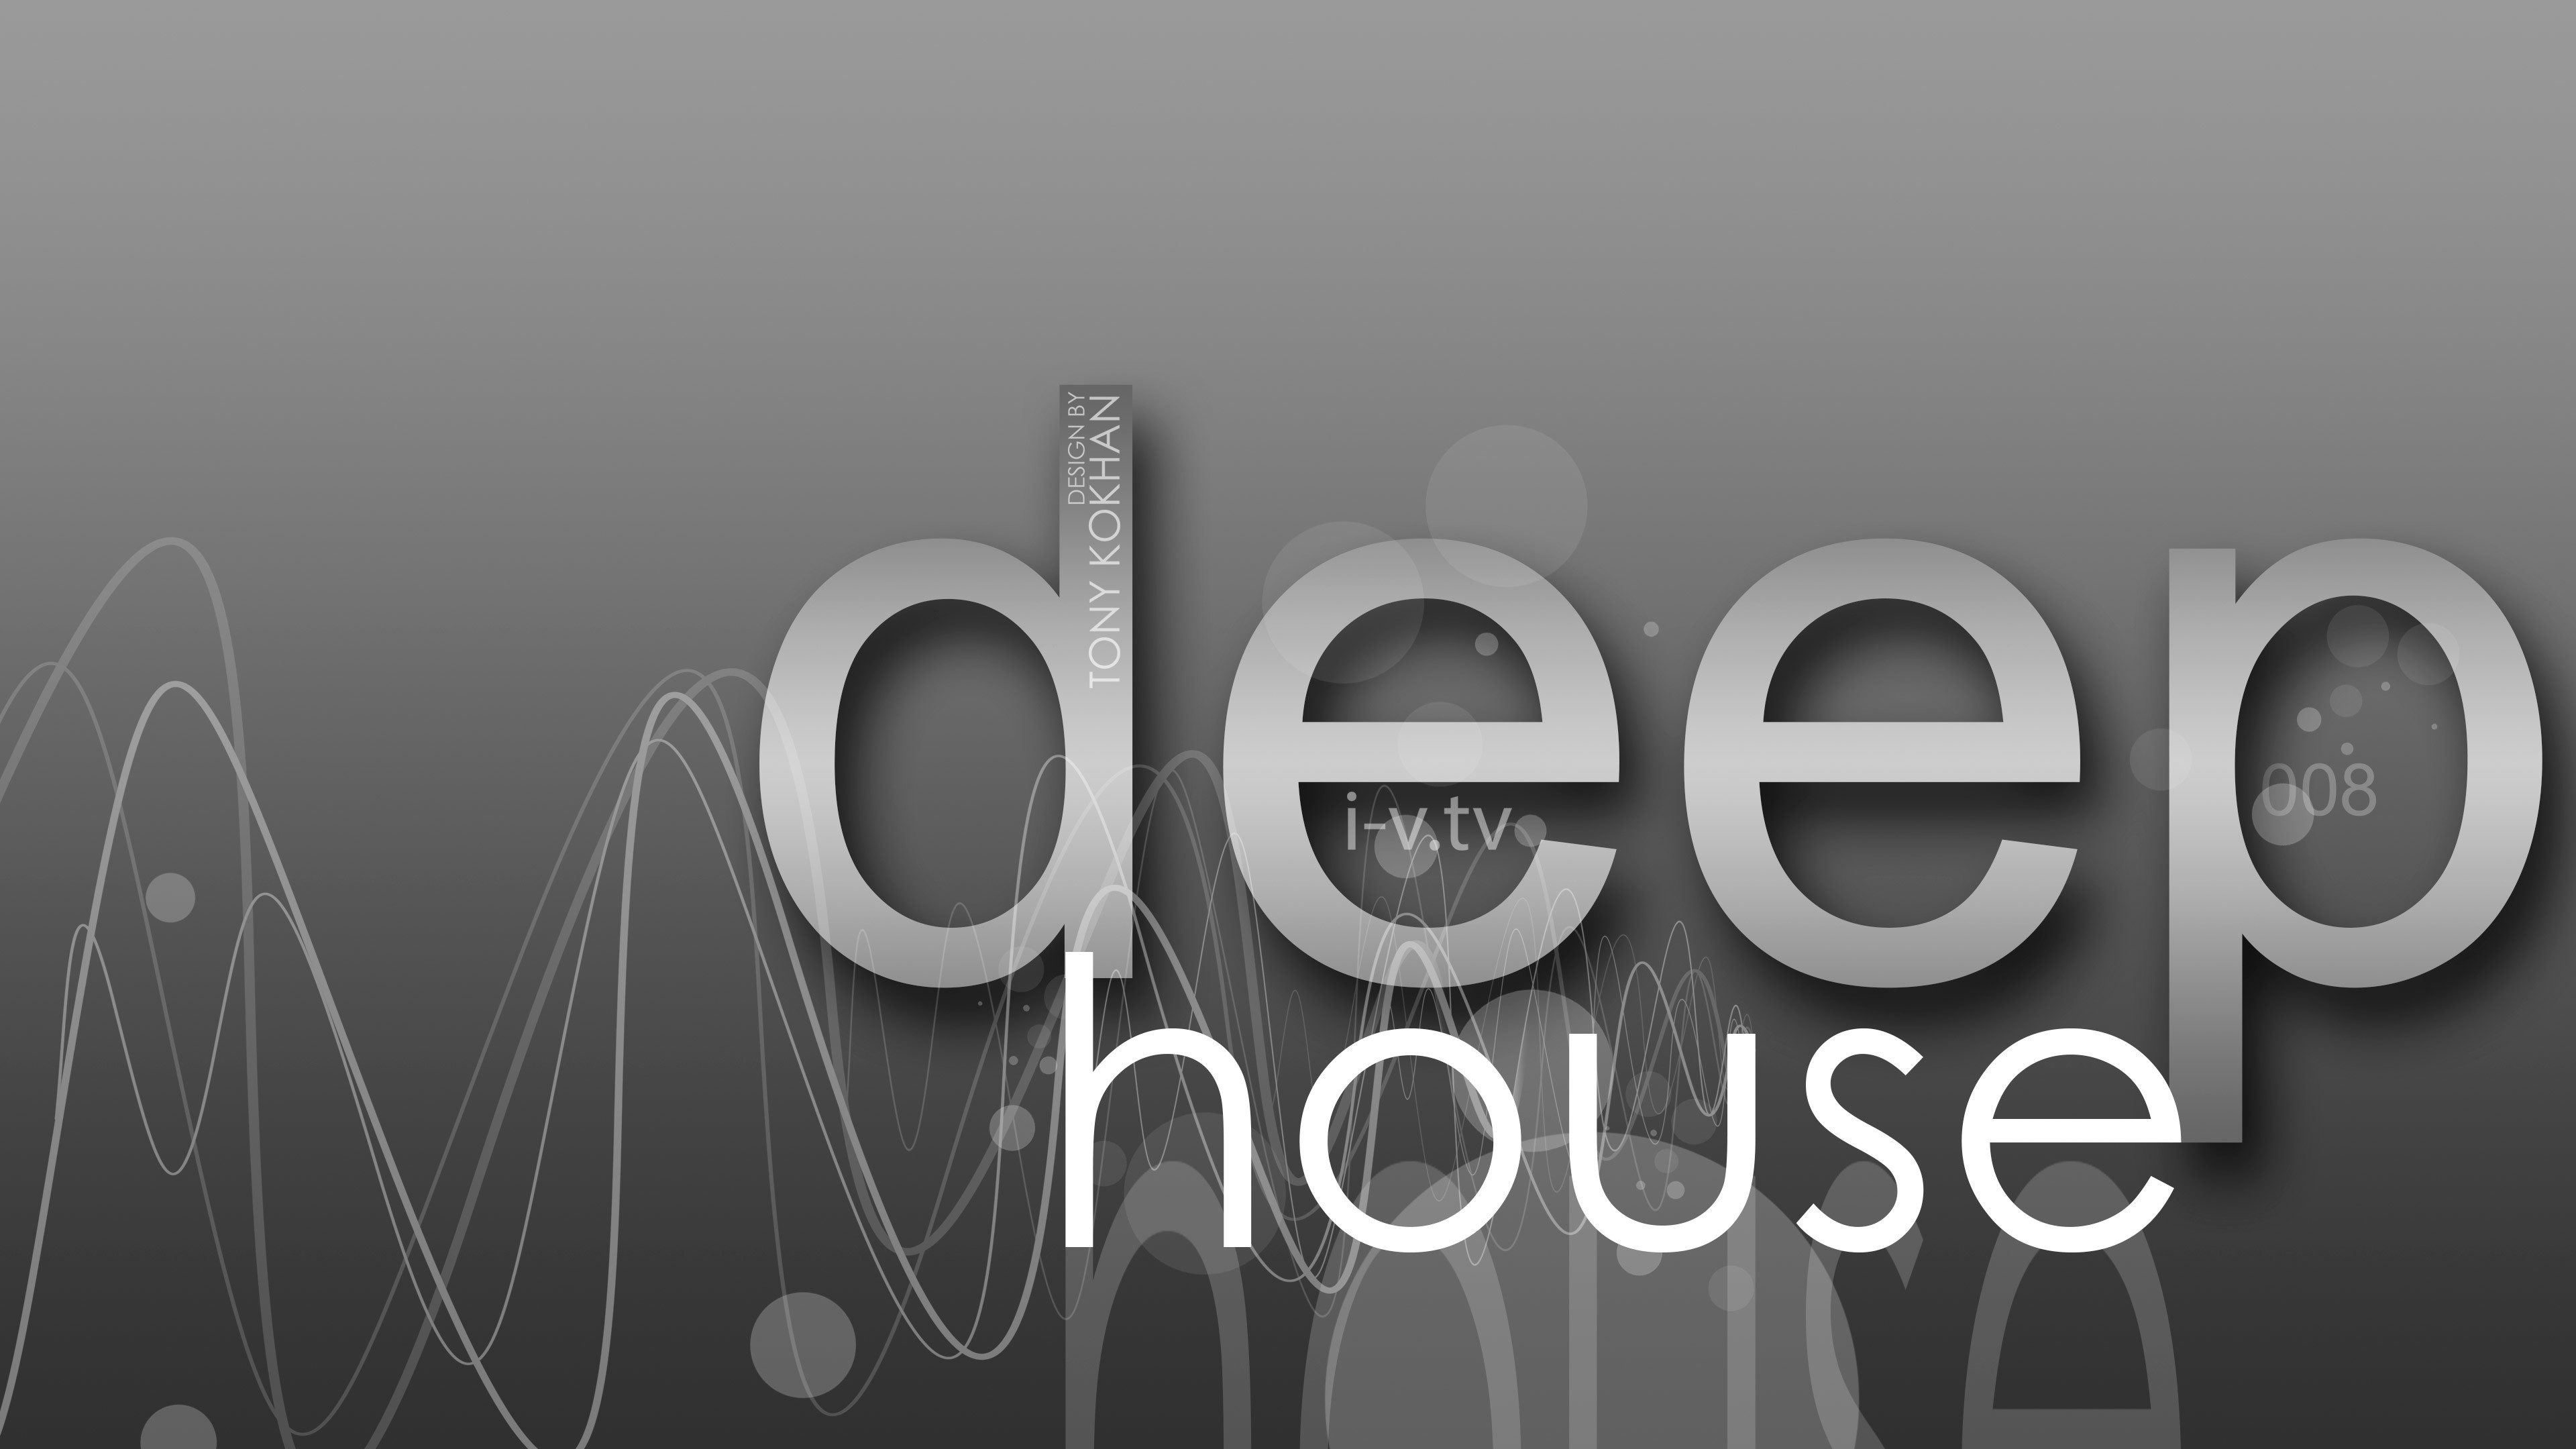 … Deep-House-Music-Abstract-Sound-eQ-Words-Style-